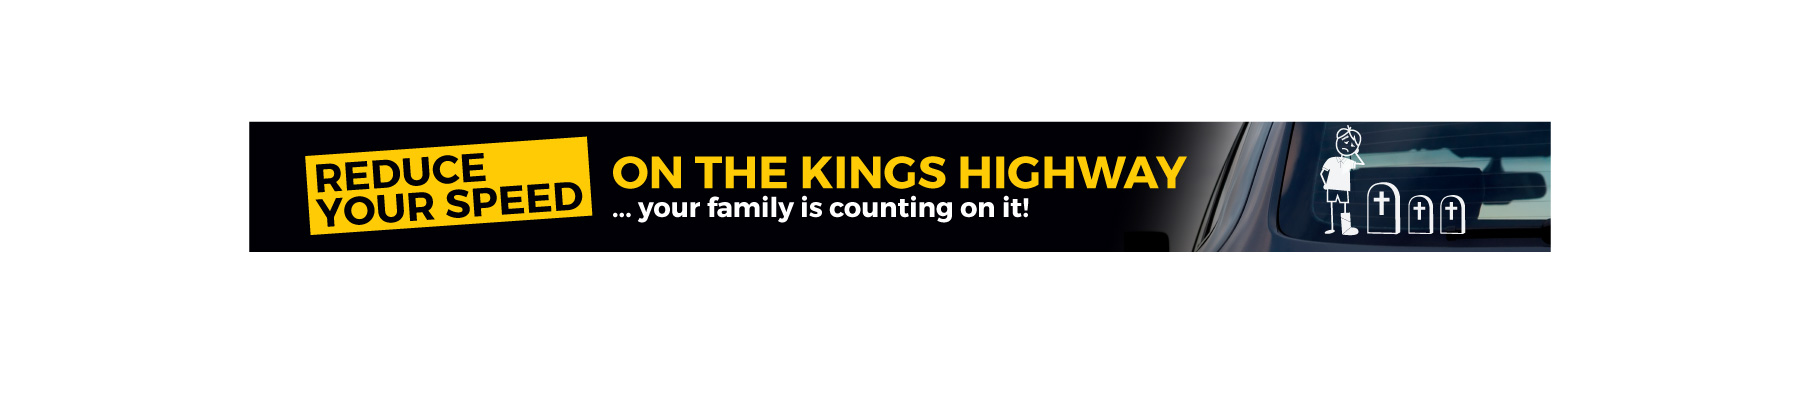 Kings Highway campaign